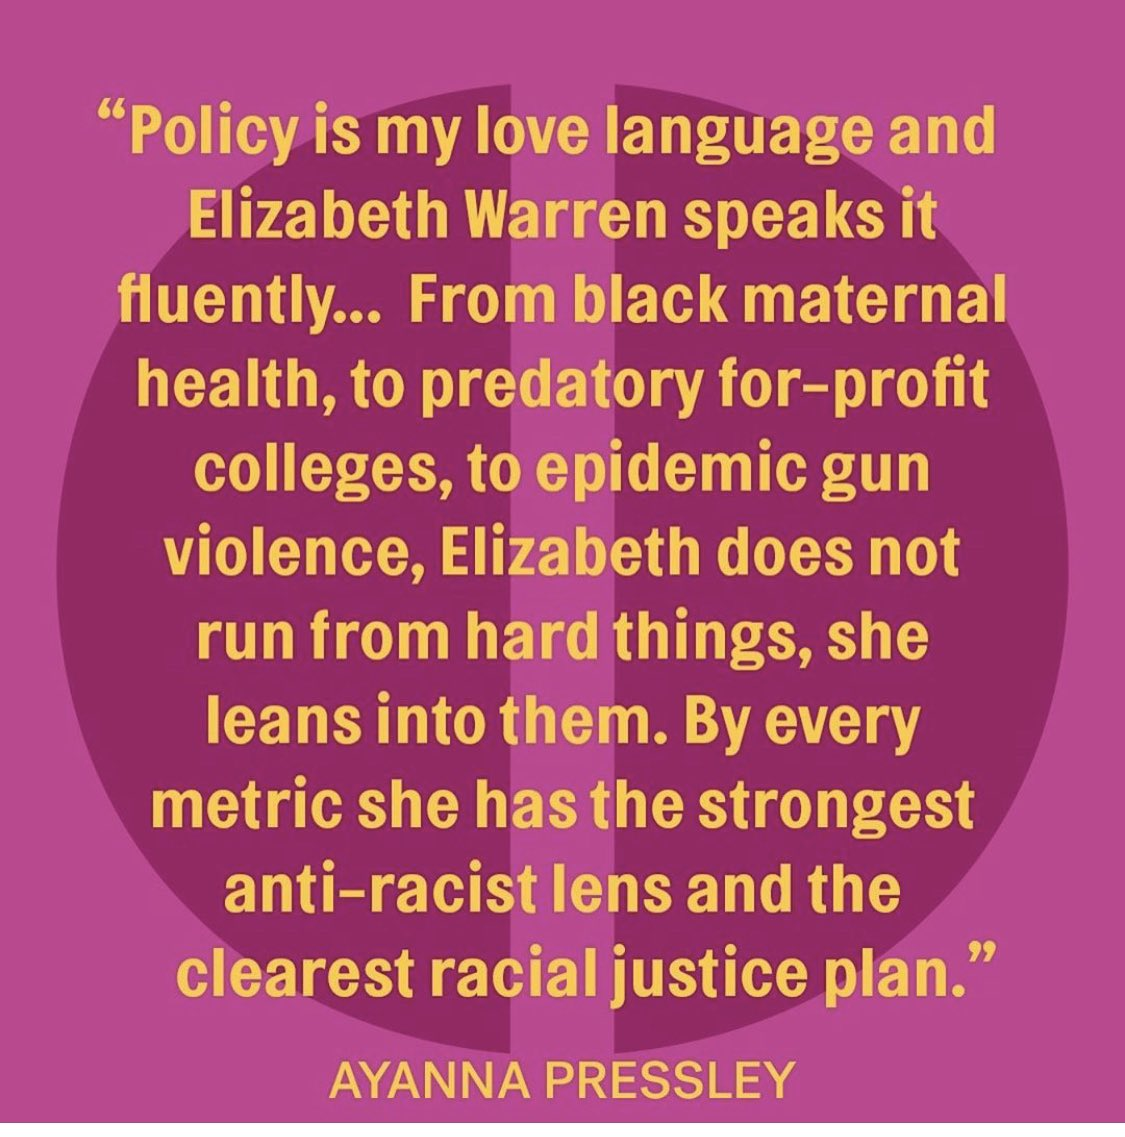 Policy is my love language 💜 #ChooseWarren